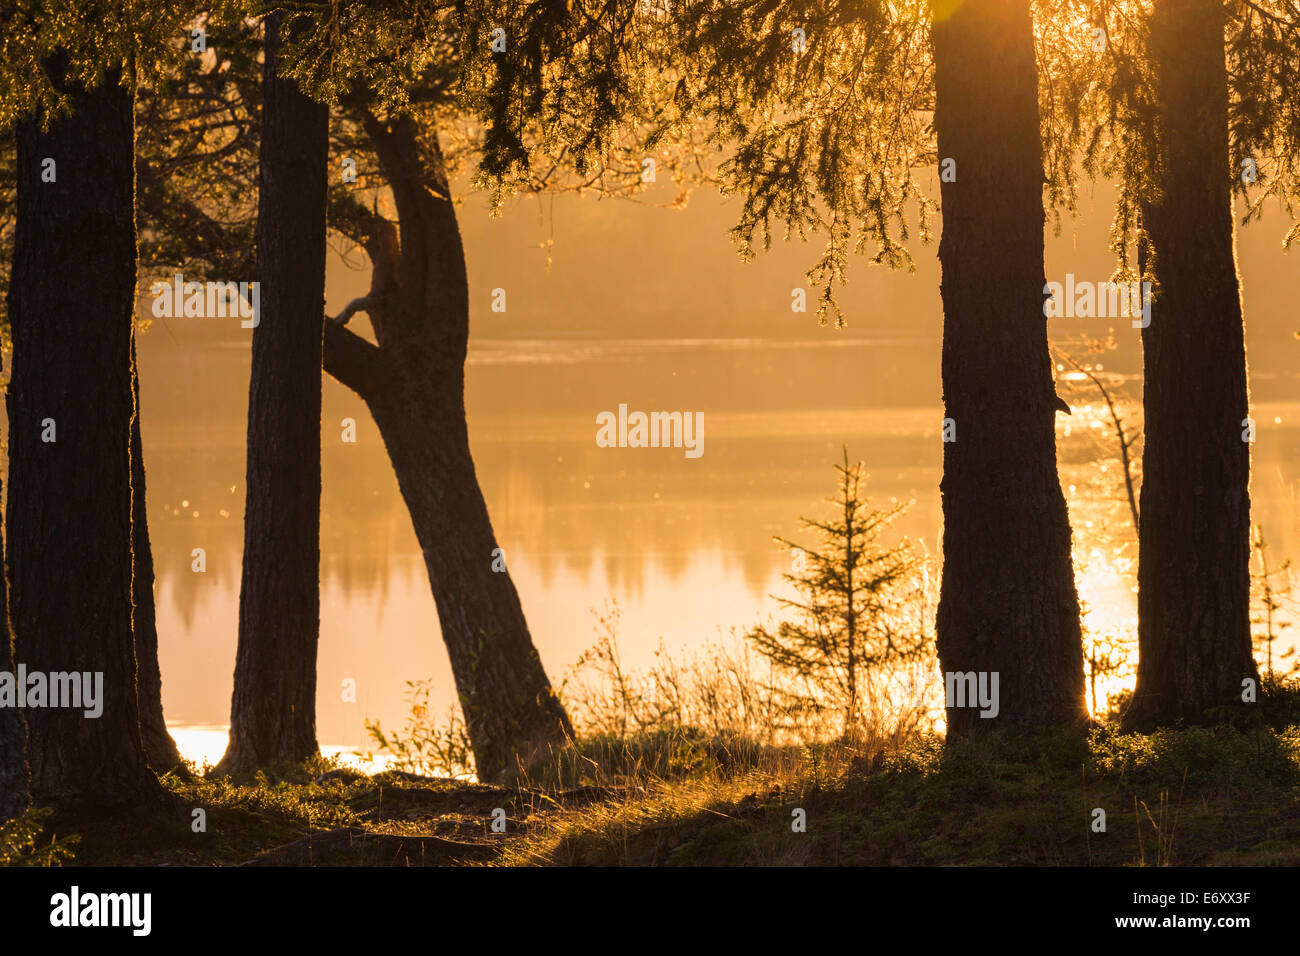 Lake in direct light with spruces in Gällivare, Lapland, Swedish lapland - Stock Image